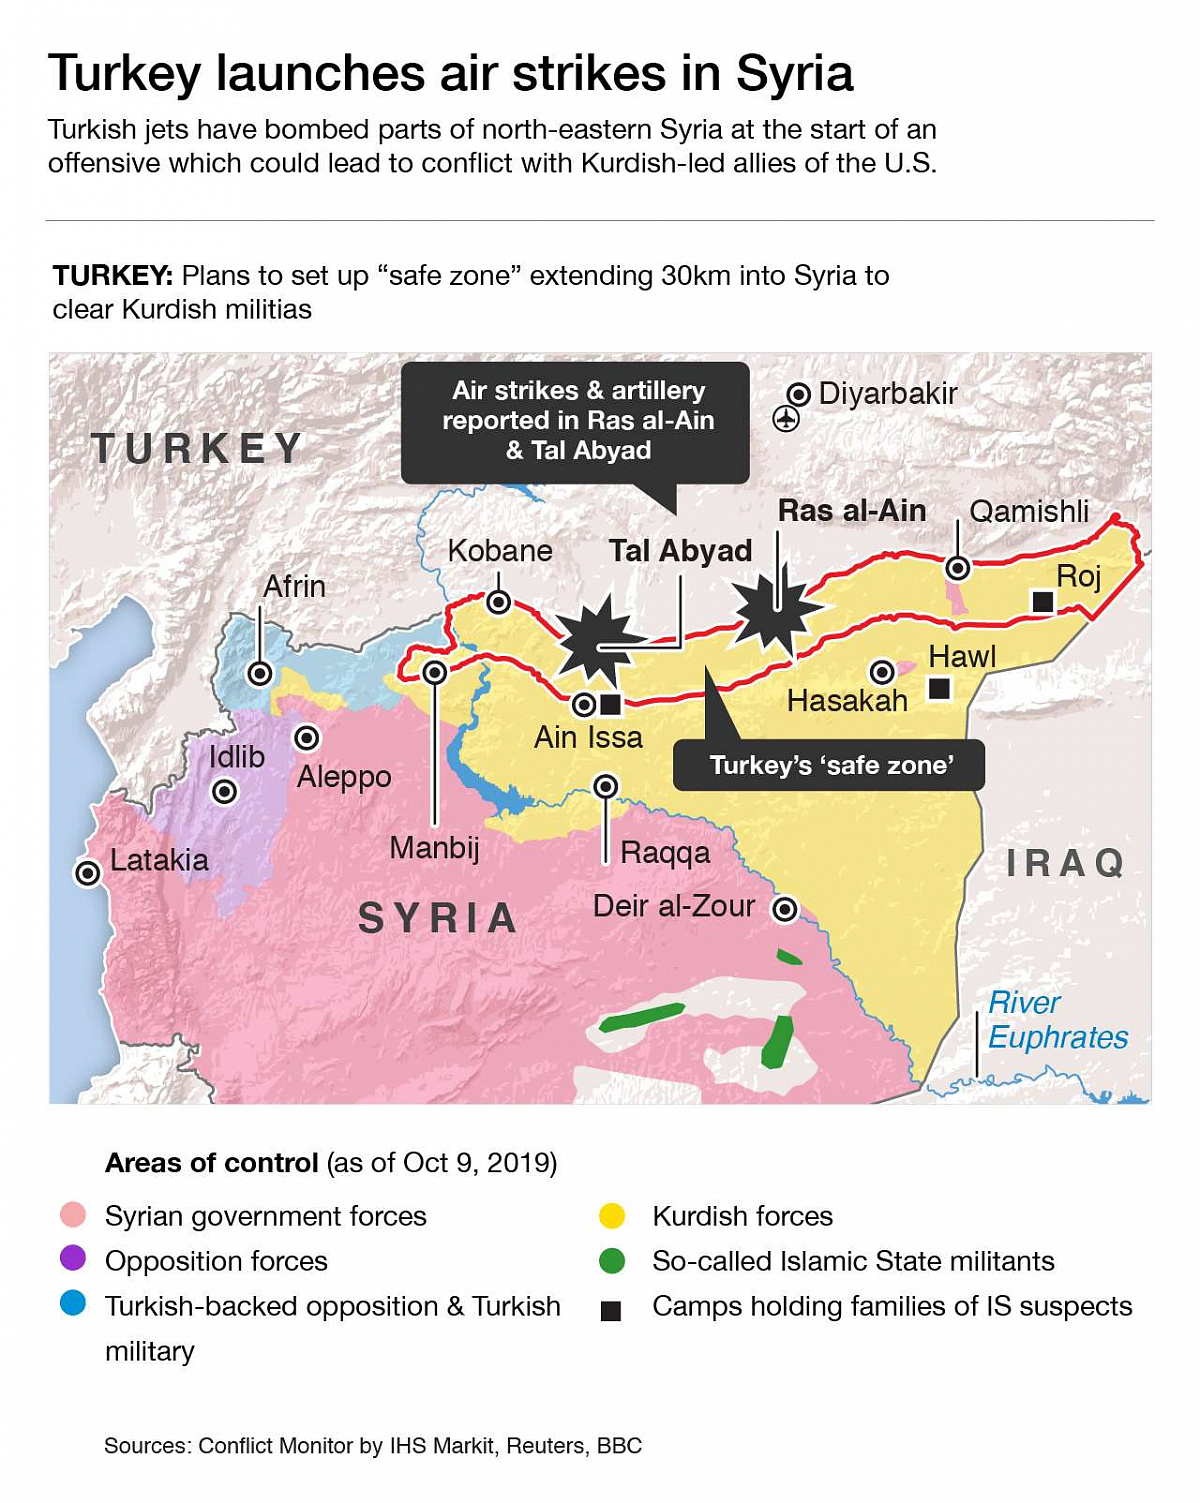 ned_482_turkey_syria_map_jhr6vh9a.jpg